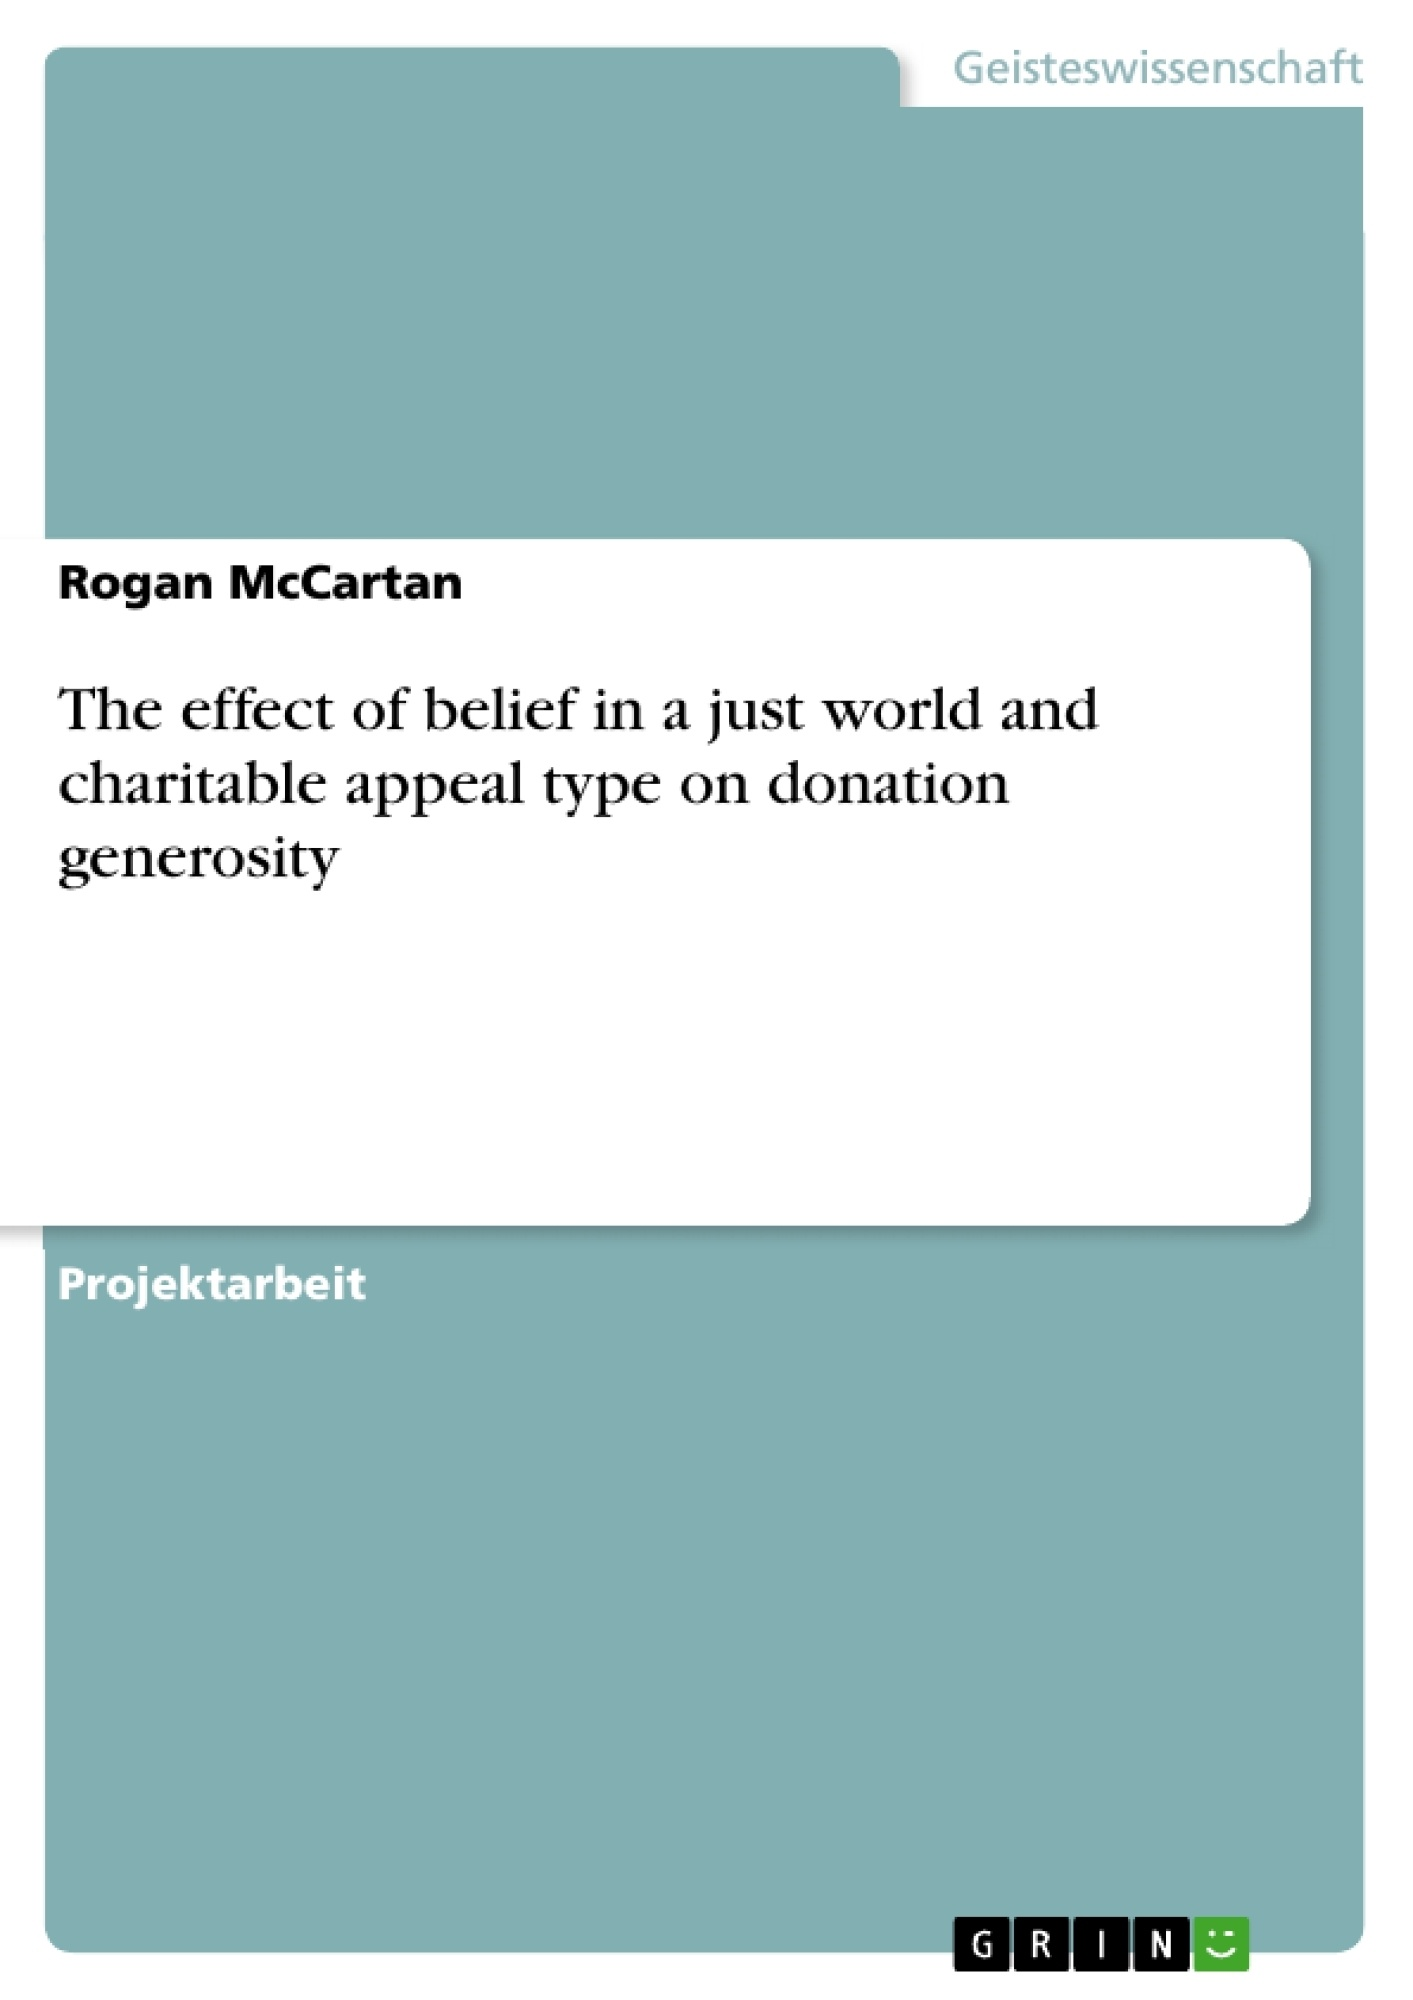 Titel: The effect of belief in a just world and charitable appeal type on donation generosity